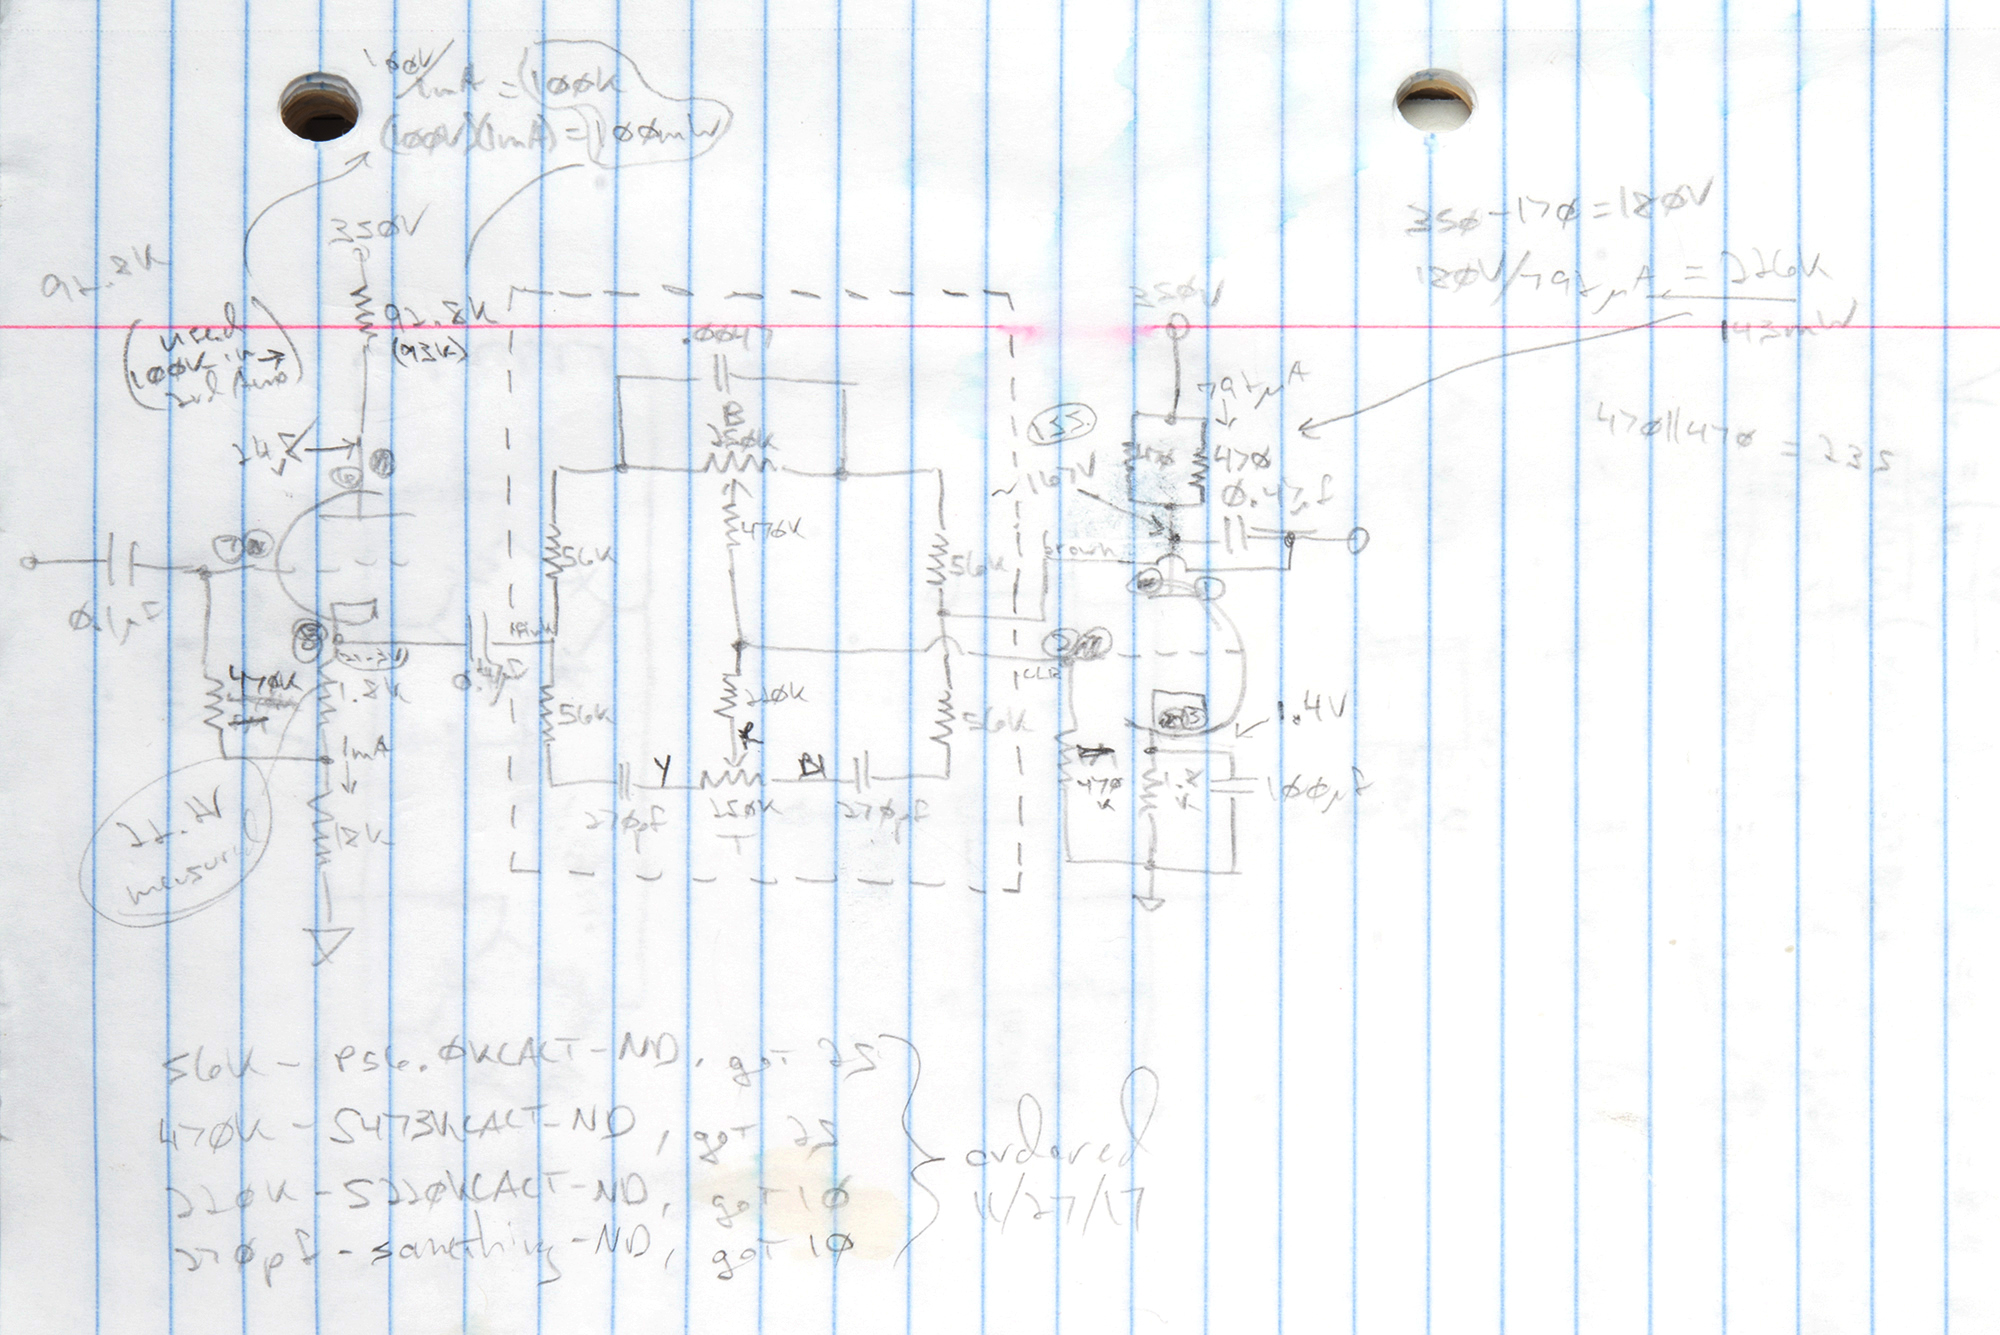 Tube Amps In The Age Of Bluetooth Speakers News Sparkfun Electronics Electron Industrial Wiring Diagram I May Have Lifted This Circuit From Same Aforementioned Morgan Jones Book But Think Got It Off Diyaudio Forums If Youre A Guy Girl